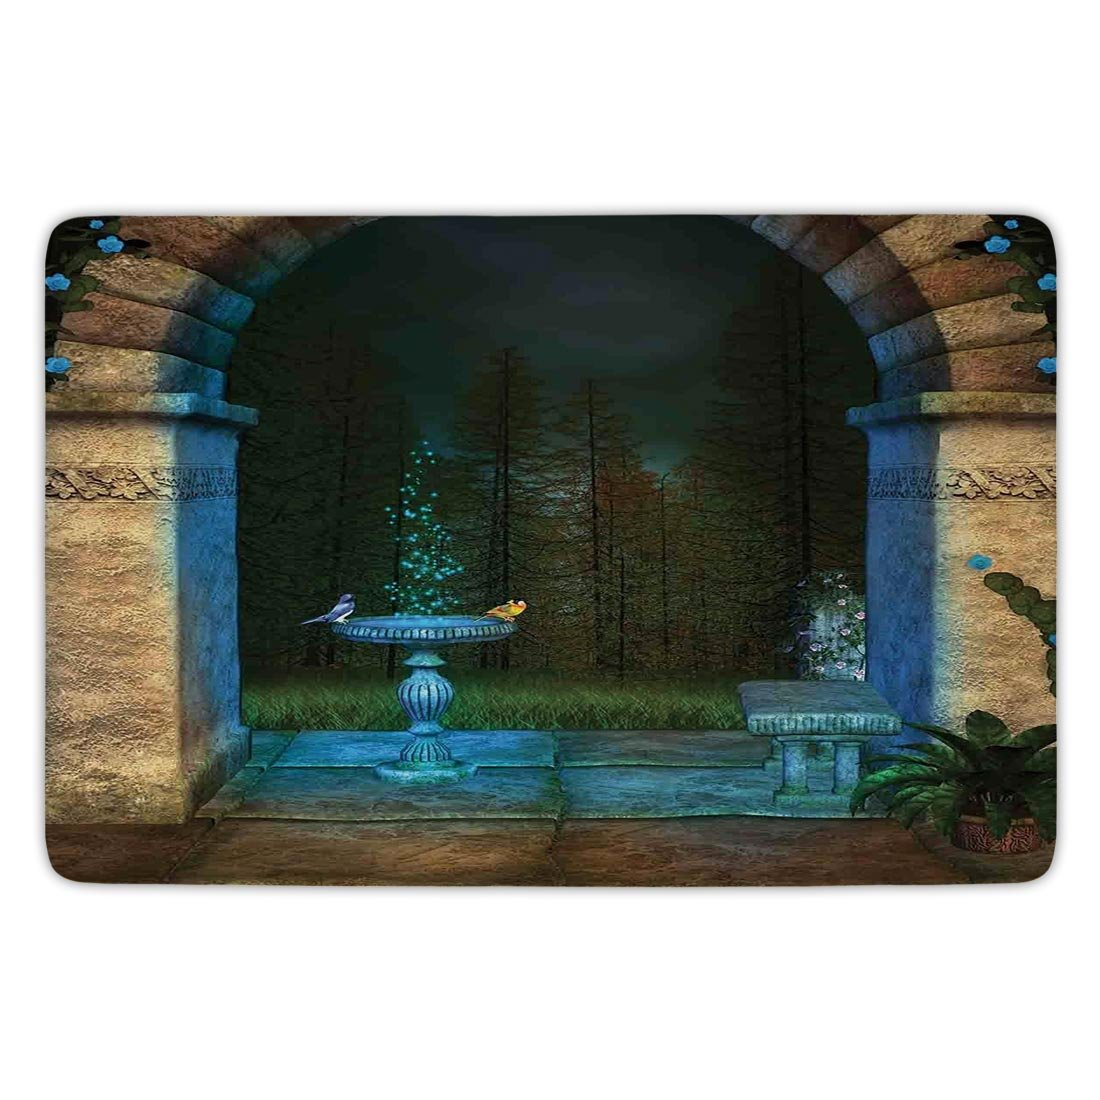 Bathroom Bath Rug Kitchen Floor Mat Carpet,Gothic,Forest Landscape from Ancient Archway Birds on Fountain Fairytale Illustration,Blue Grey Green,Flannel Microfiber Non-slip Soft Absorbent